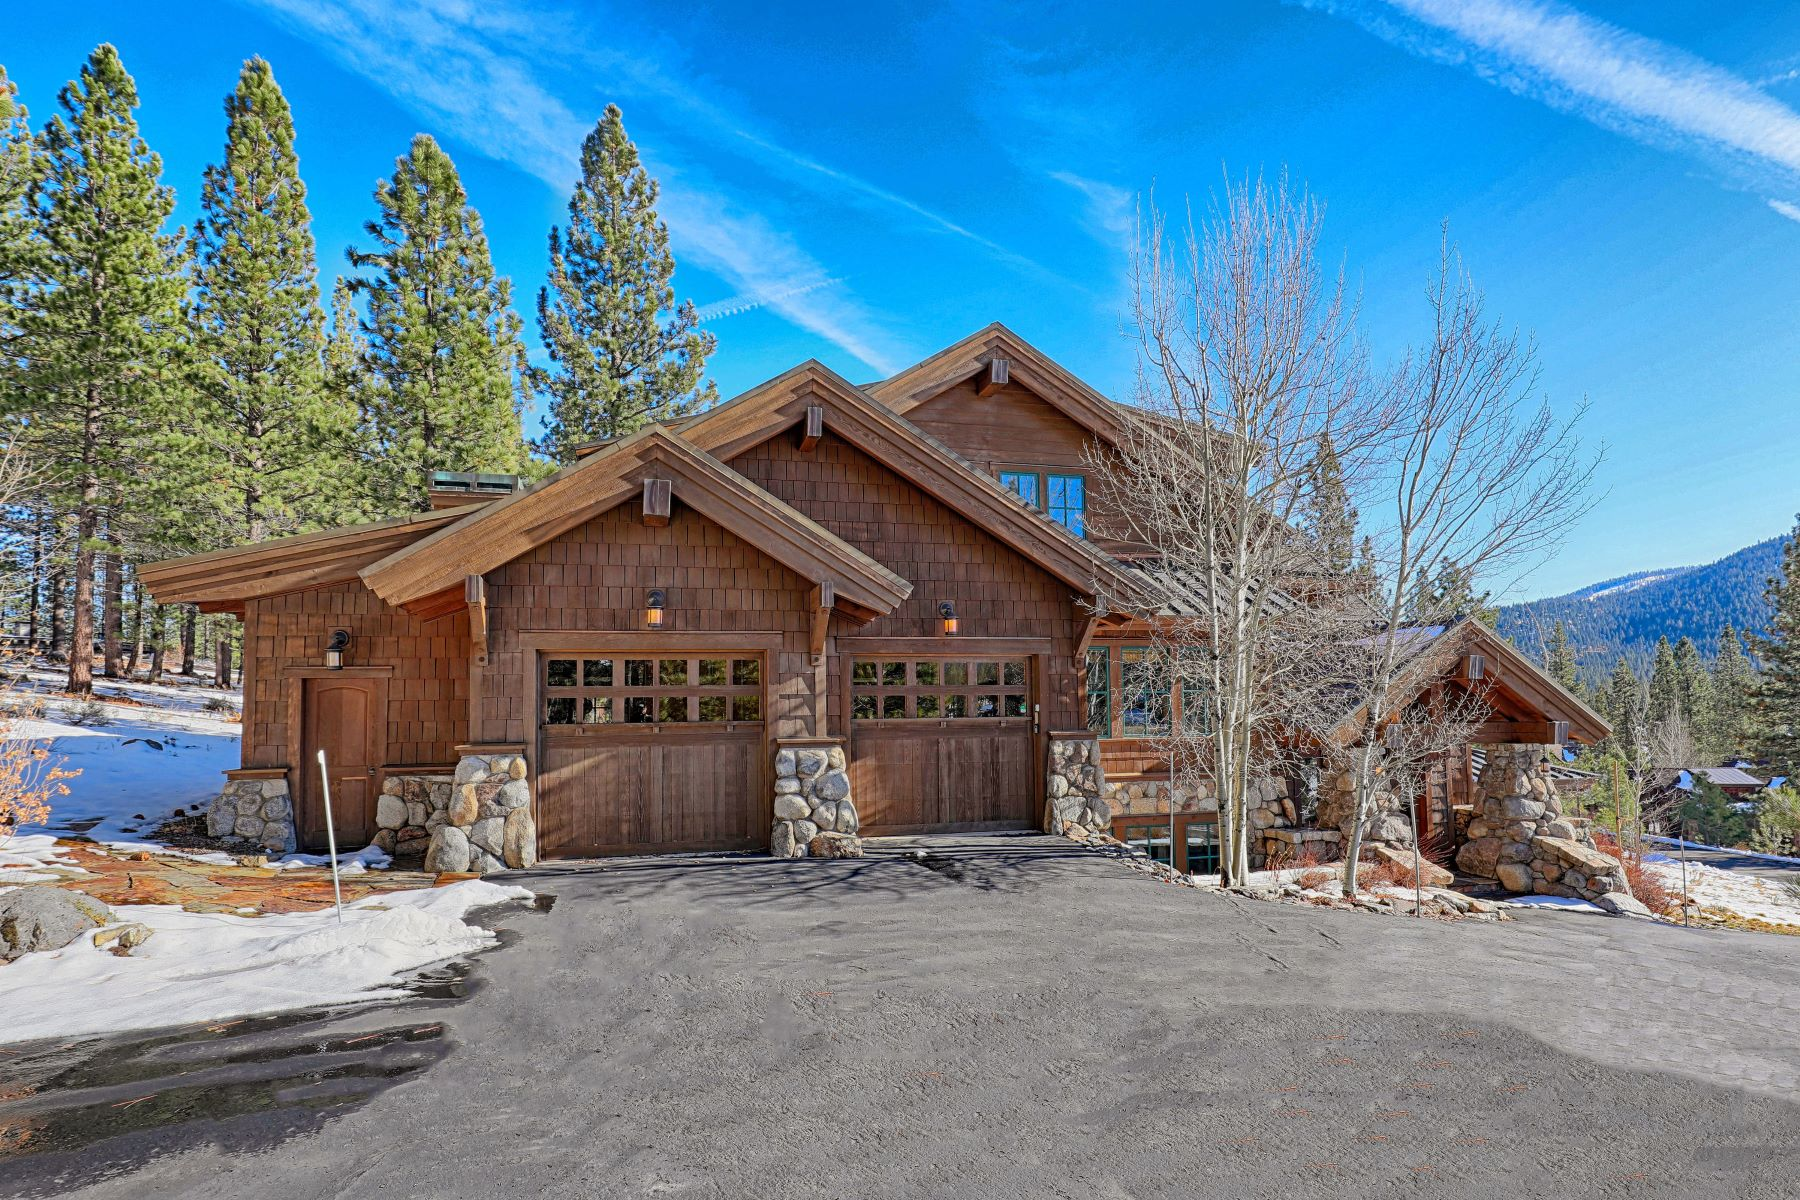 Additional photo for property listing at 340 Elias Baldwin, Truckee, California 96161 340 Elias Baldwin Truckee, California 96161 United States